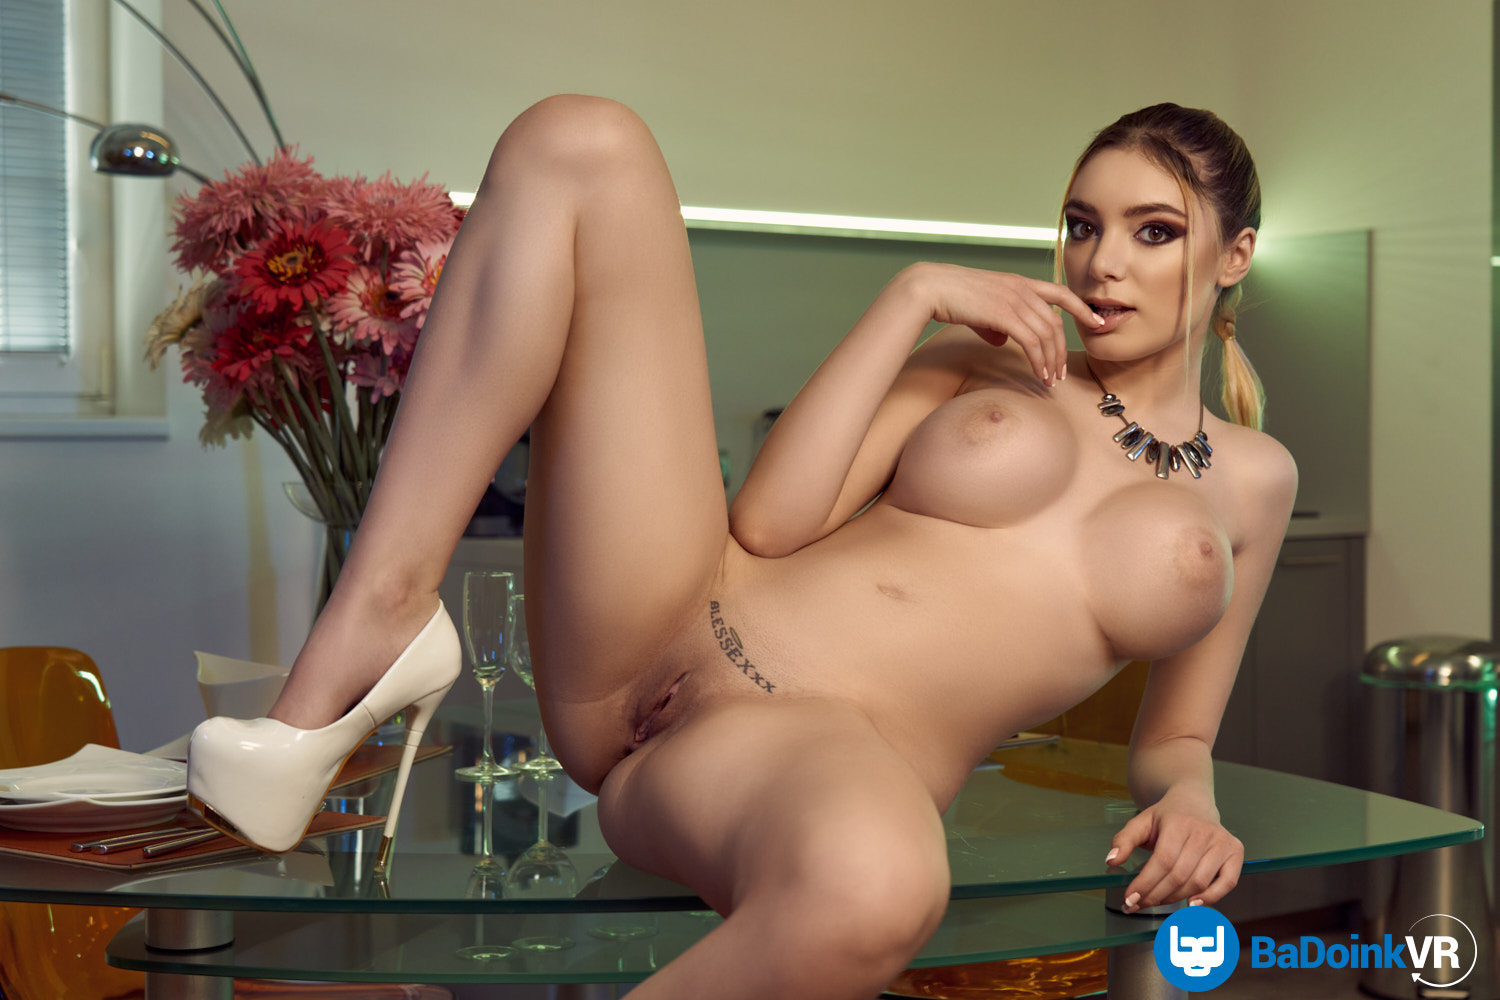 Working Up An Appetite - Paola Hard VR Porn - Paola Hard Virtual Reality Porn